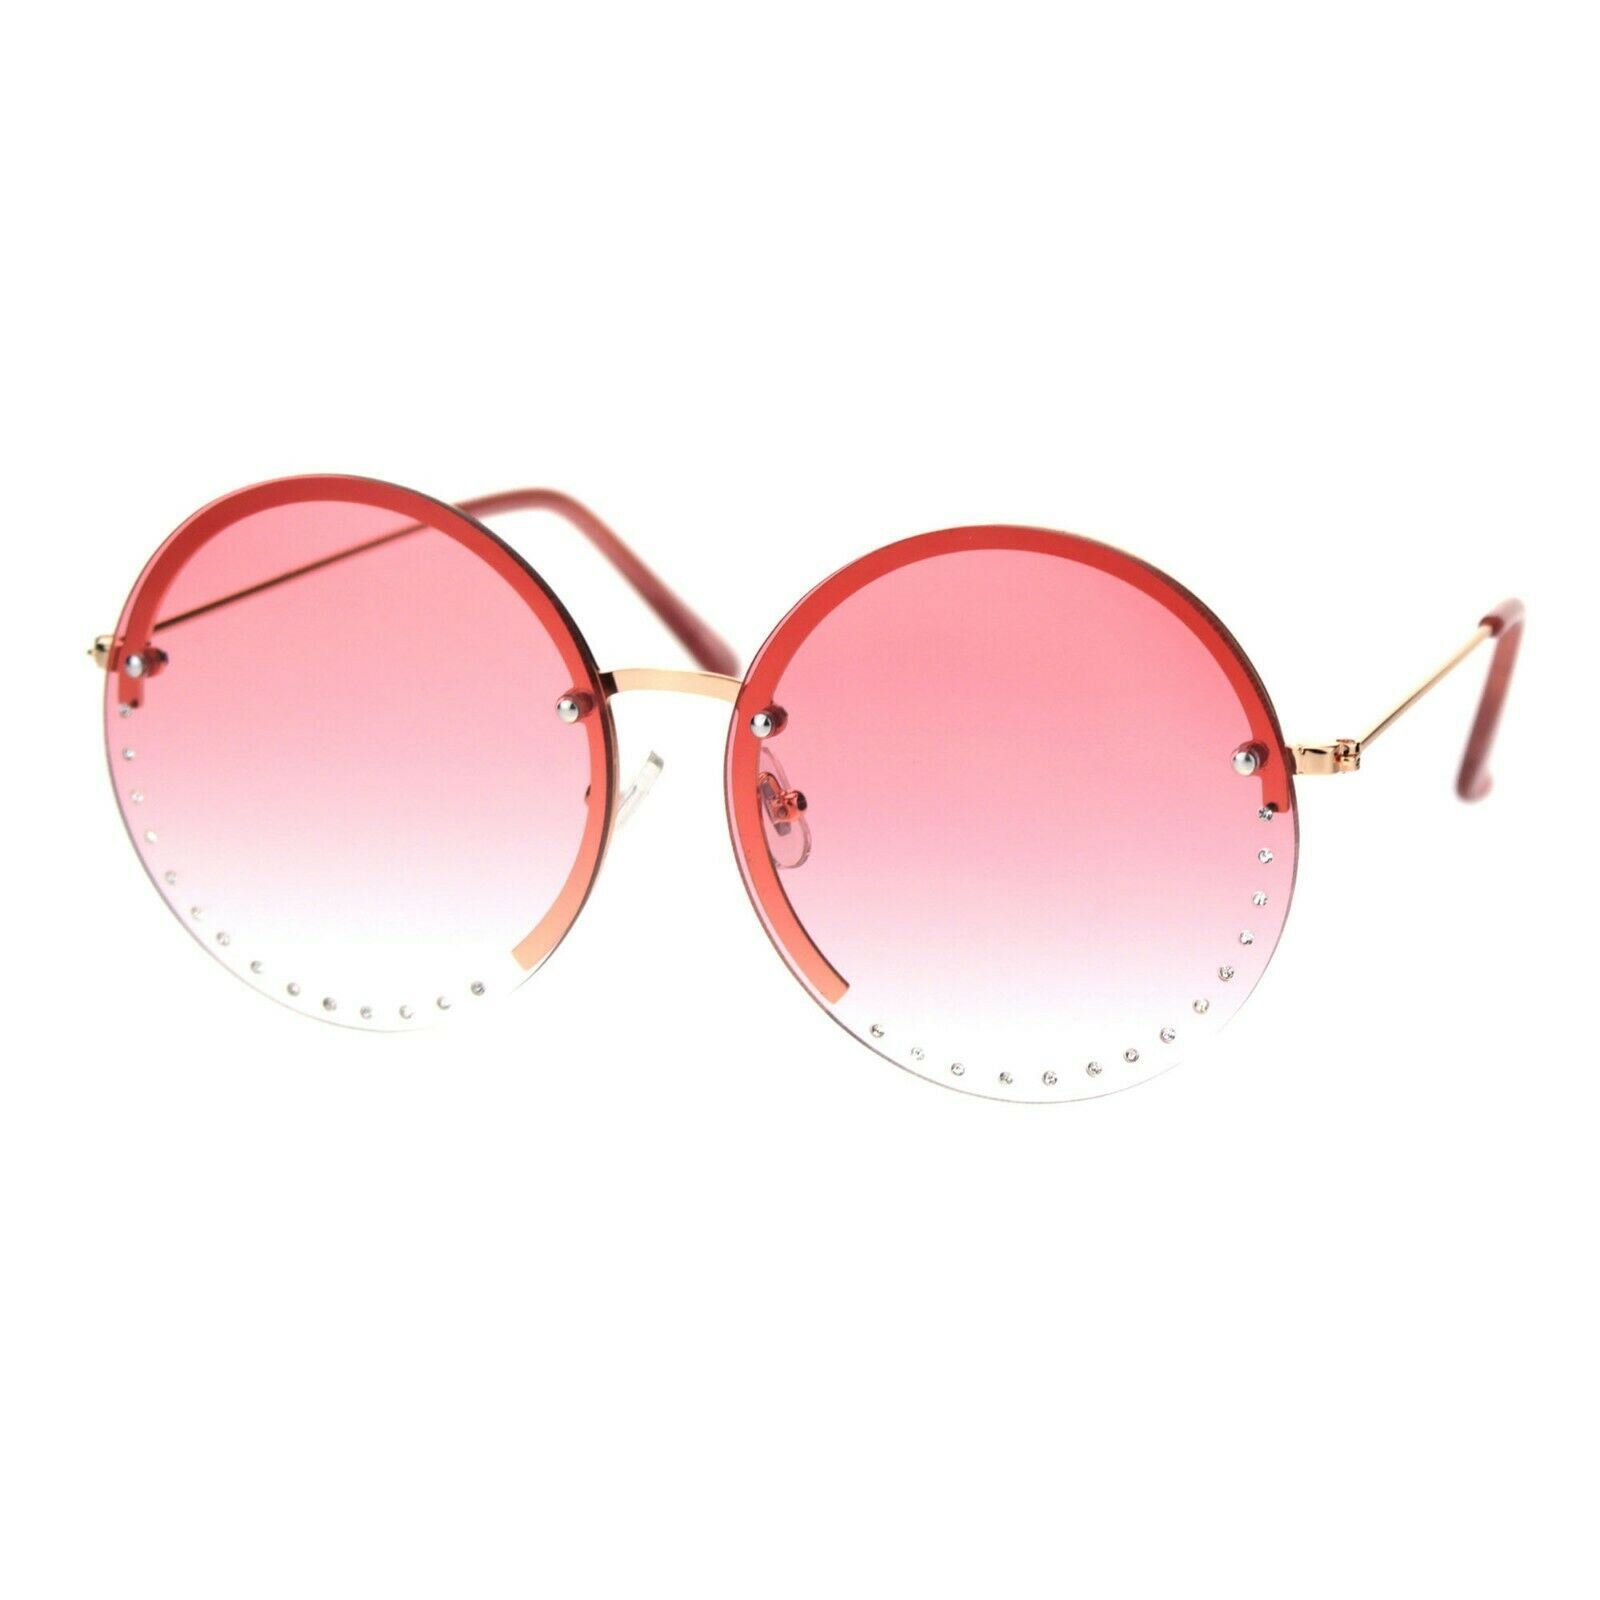 Round Circle Half Rim Sunglasses Rhinestone Decor Gradient Lens UV 400